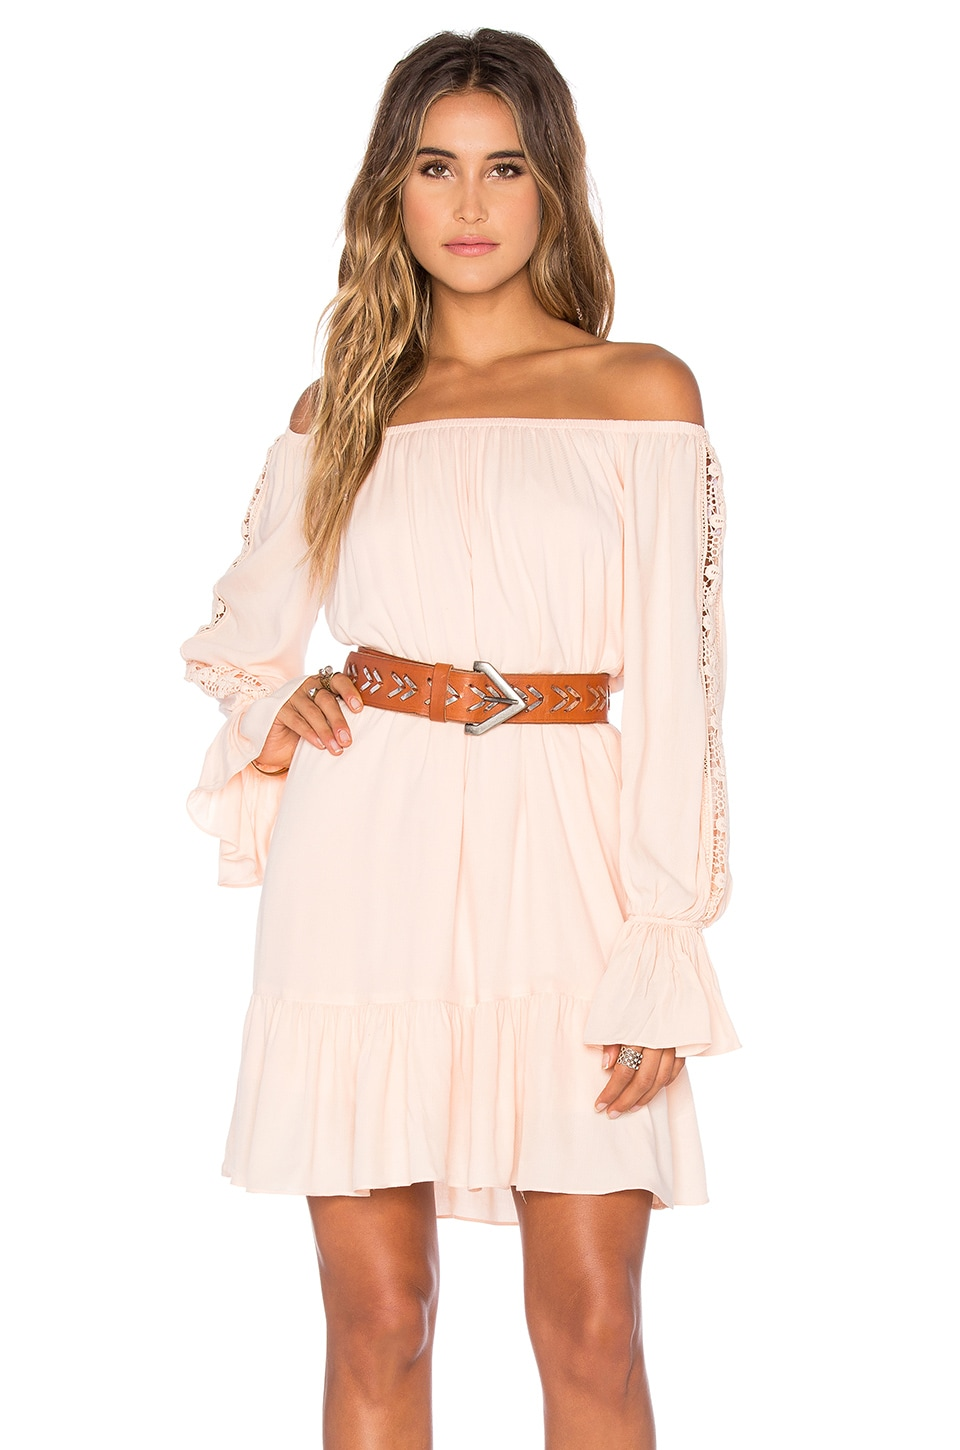 VAVA by Joy Han Dacia Off Shoulder Dress in Peach